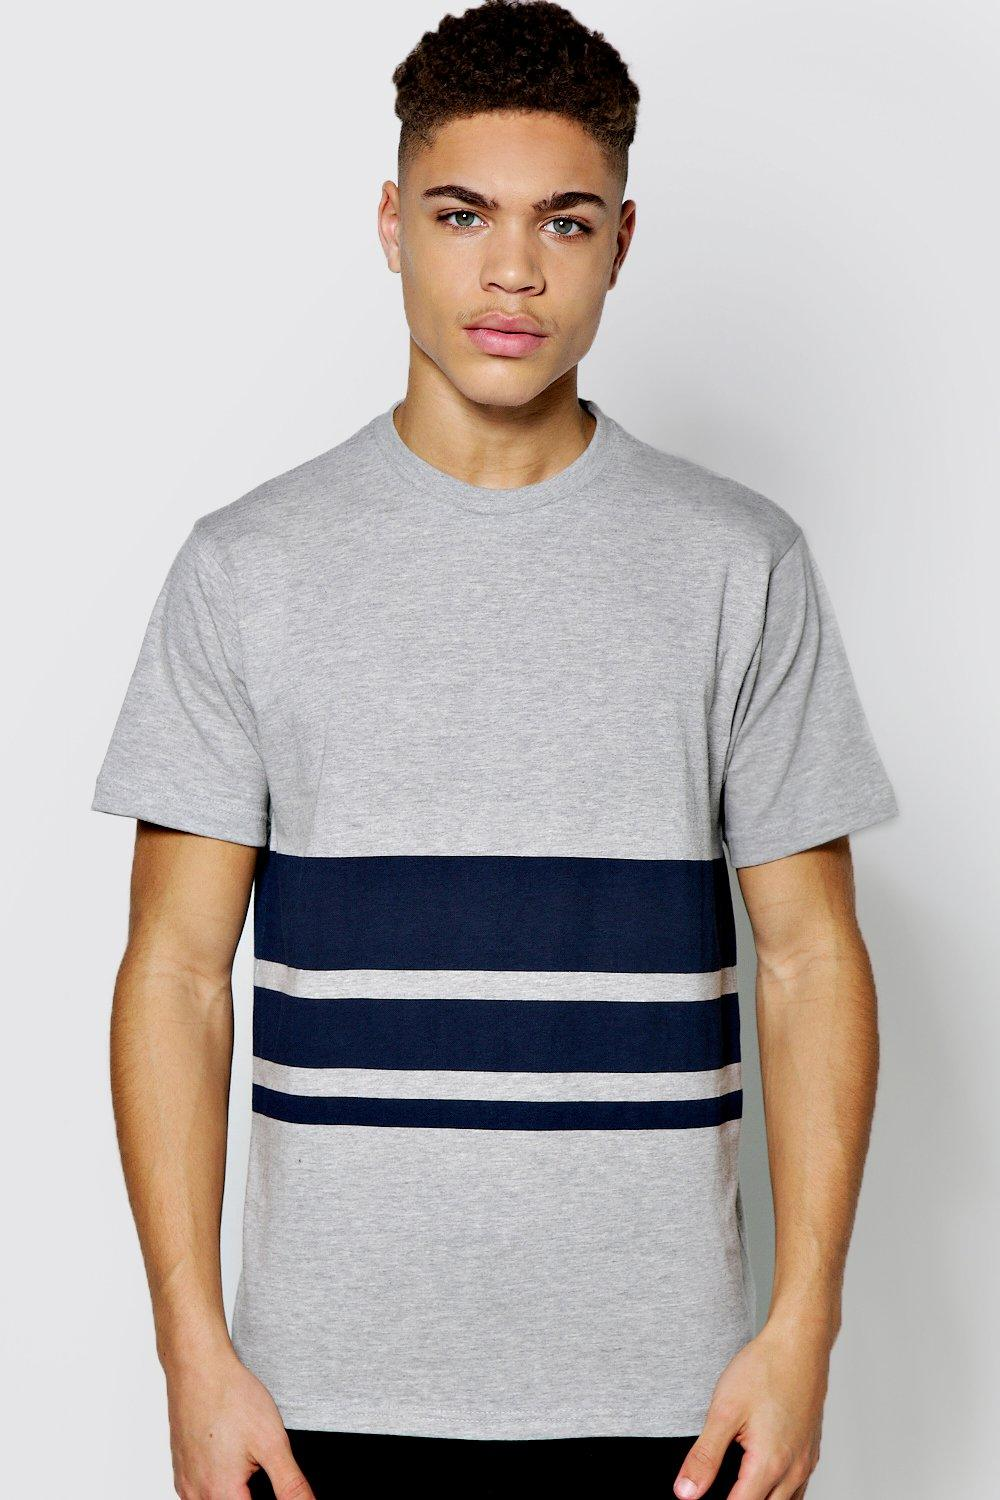 Block Stripe Crew Neck TShirt